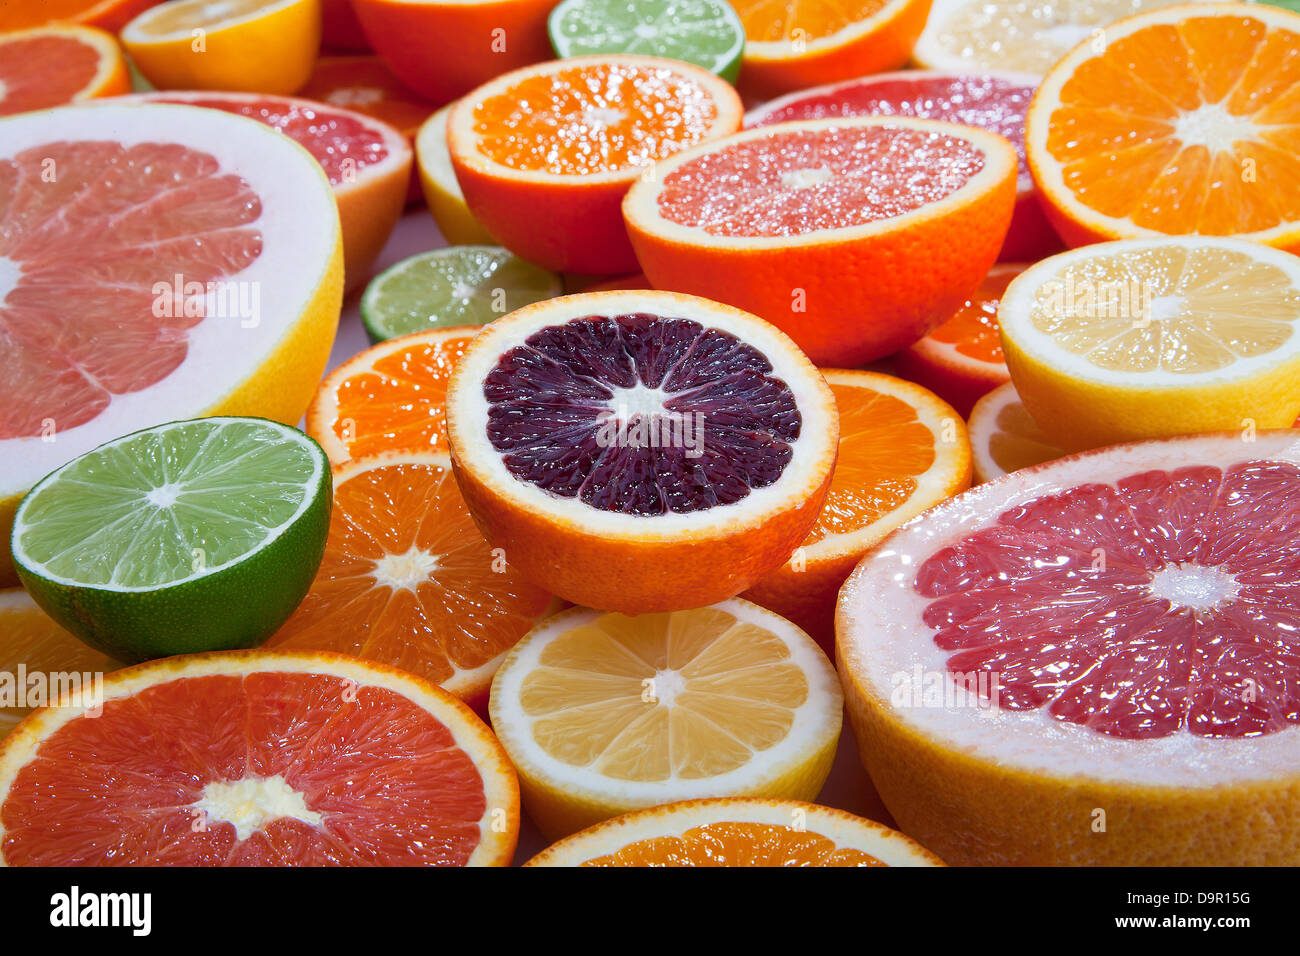 variety of cut citrus fruits - Stock Image